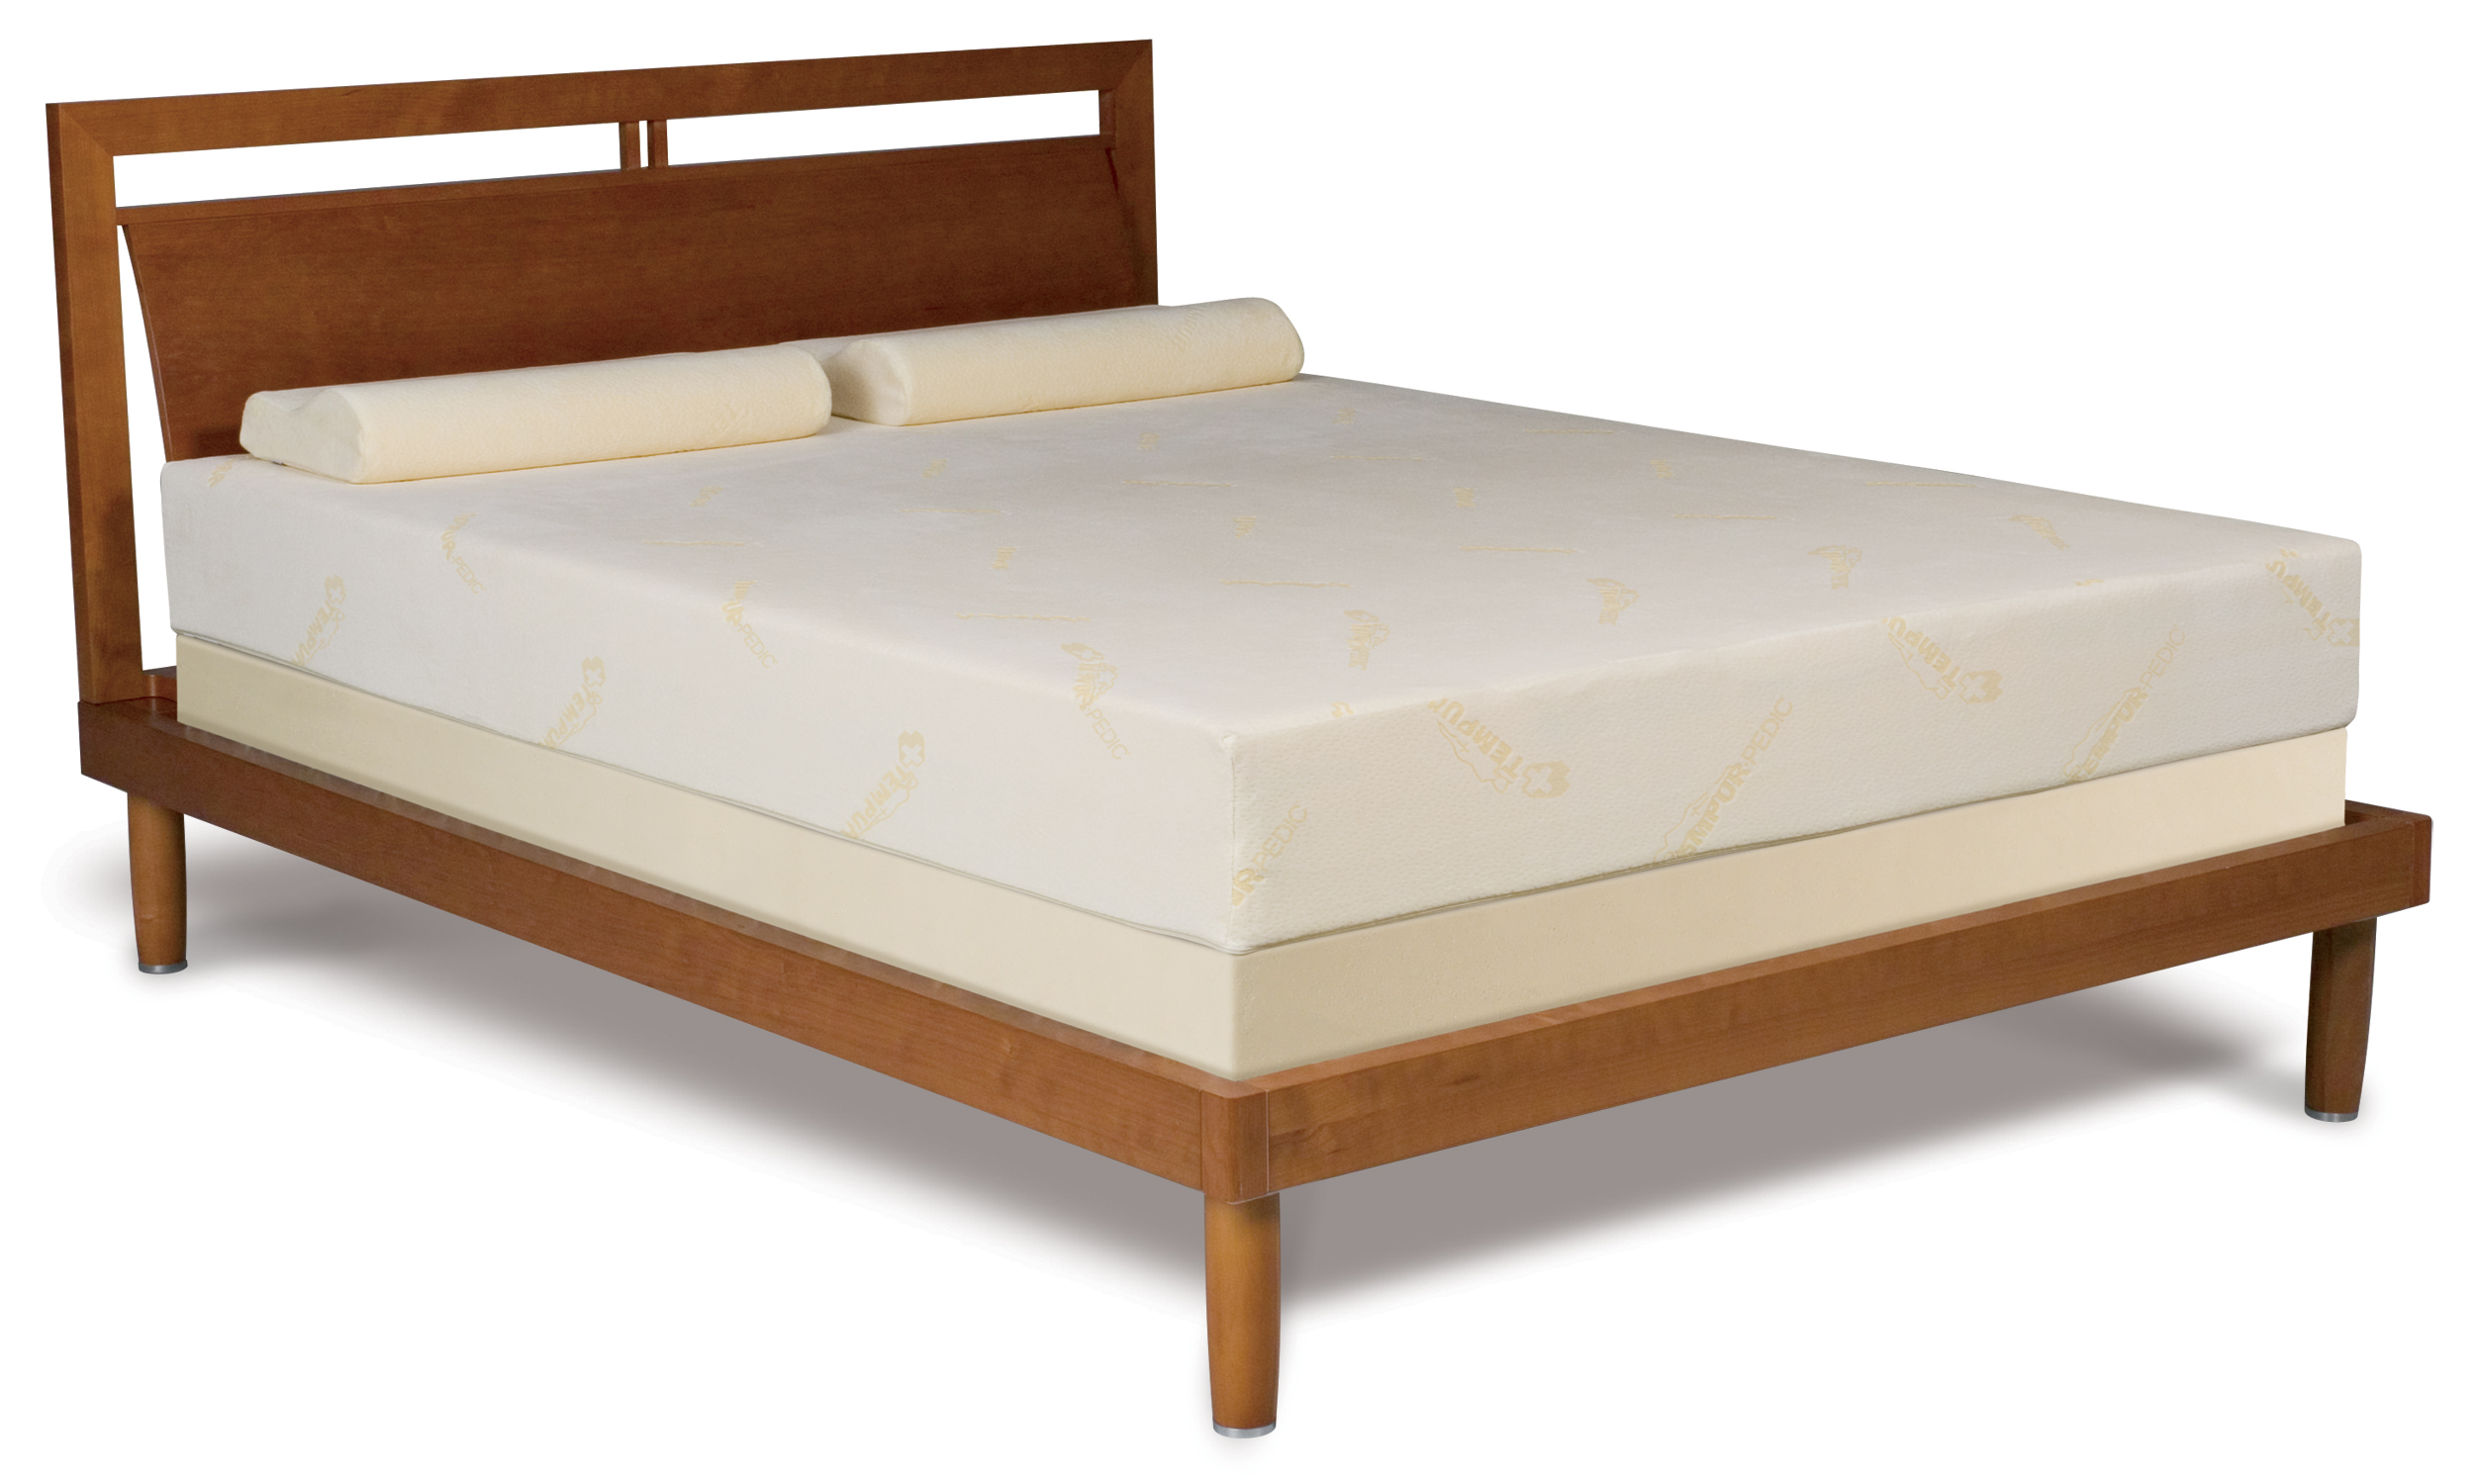 luxury exceptional bamboo size tempur memory x foam full topper photo mattress tempurpedic att pedic of